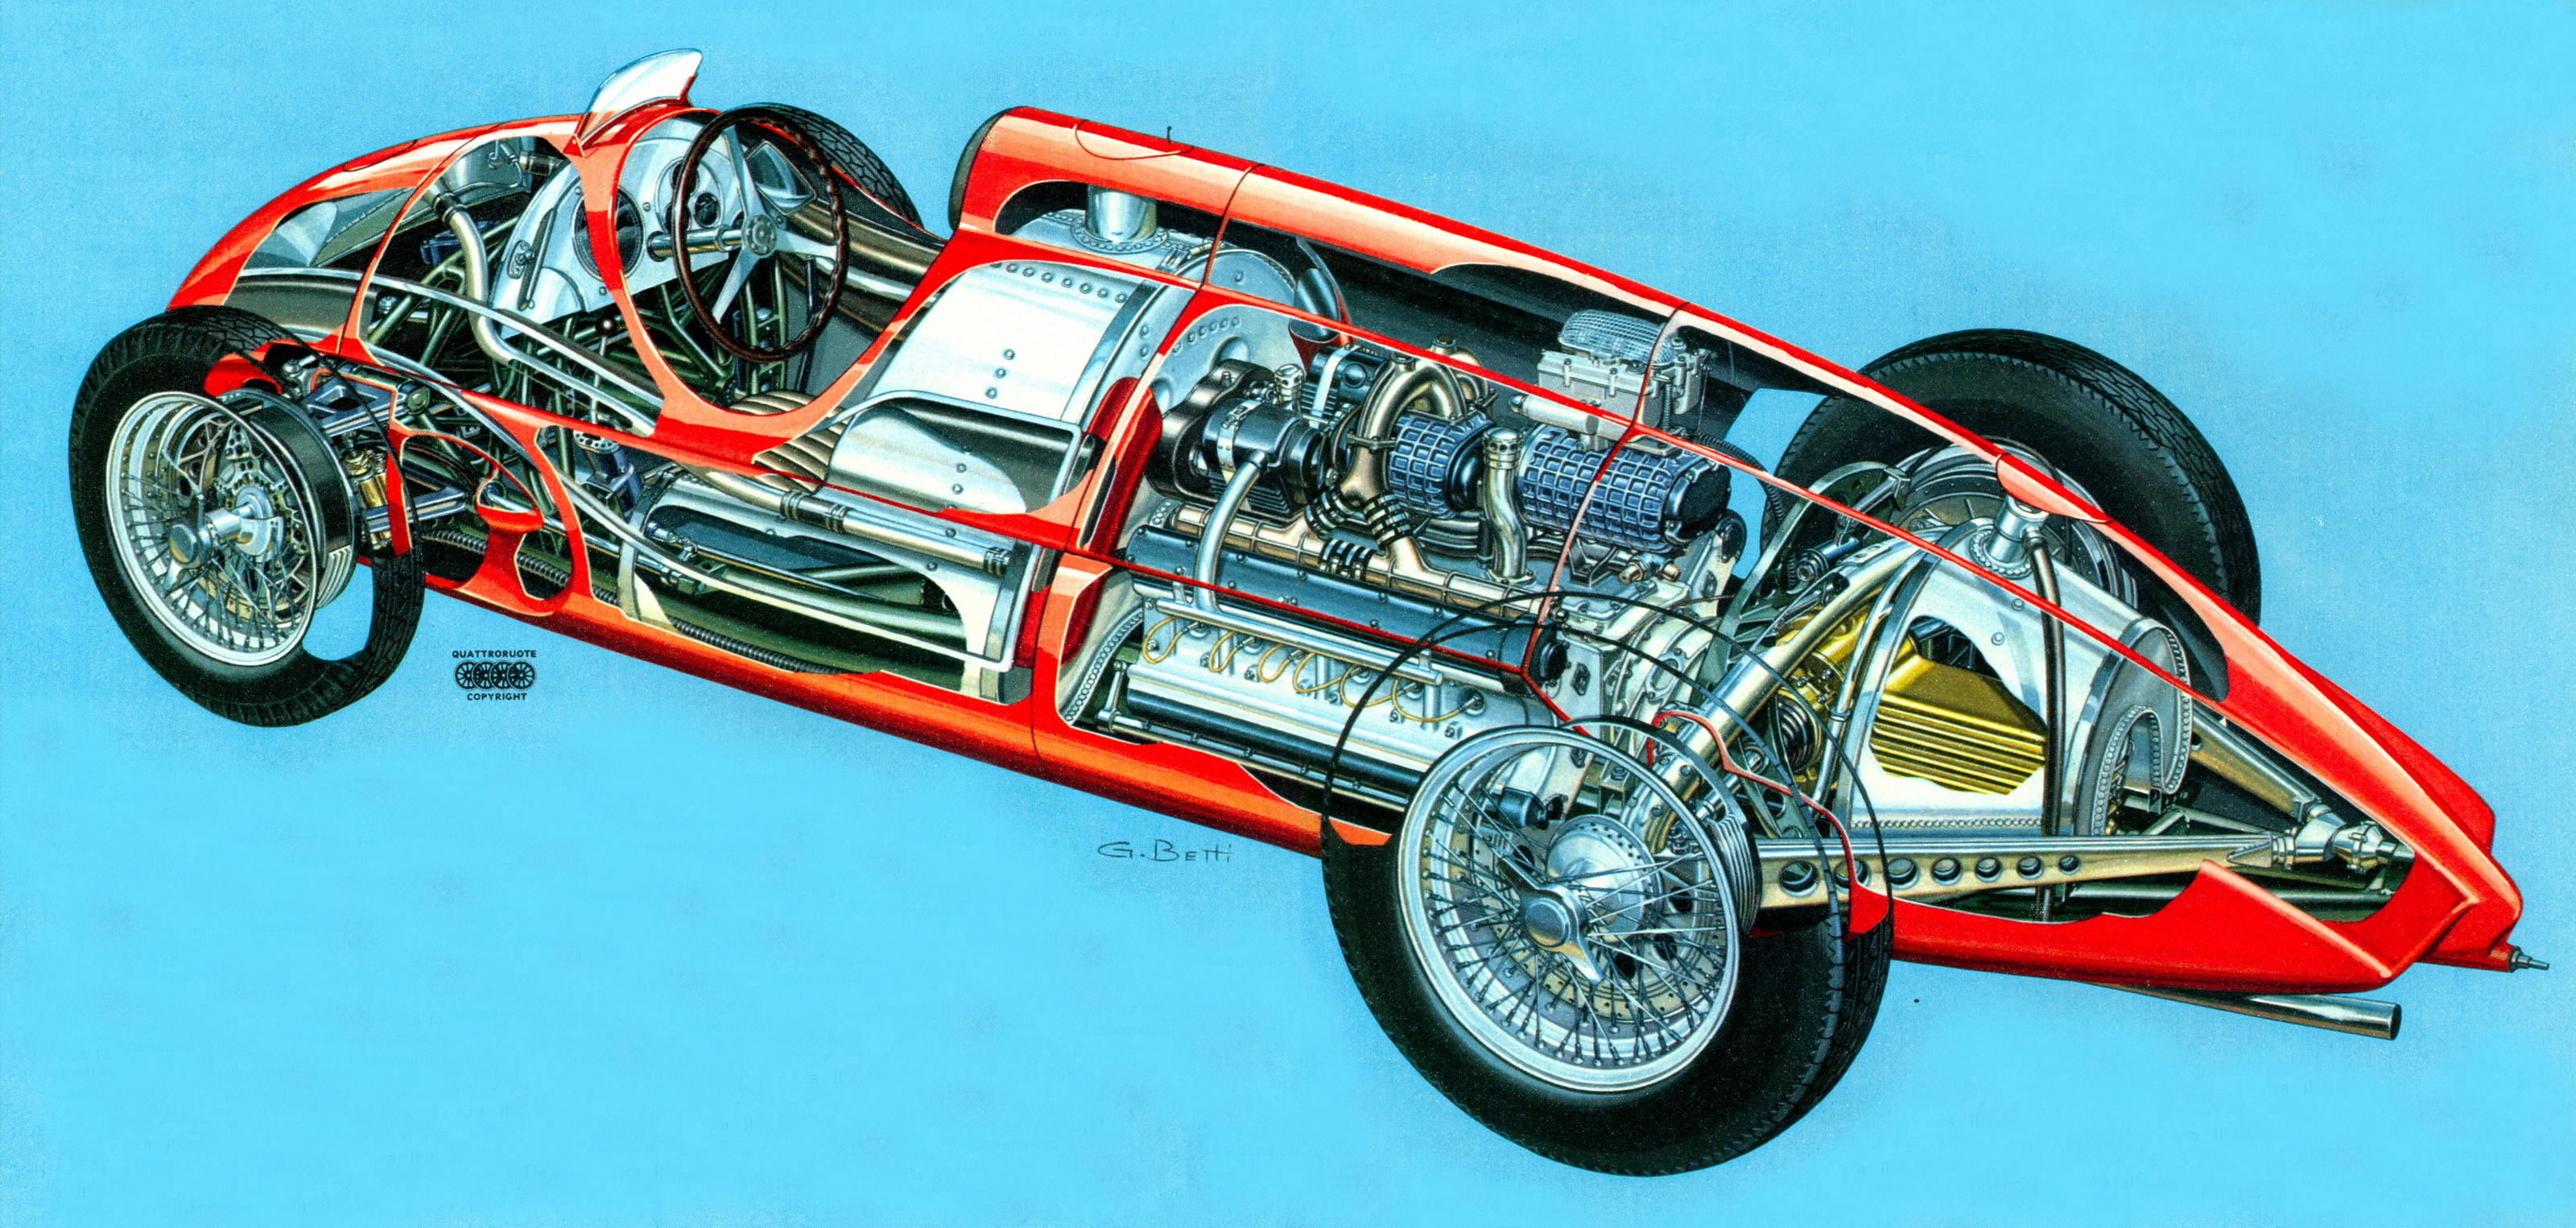 Alfa romeo 512 photo - 3